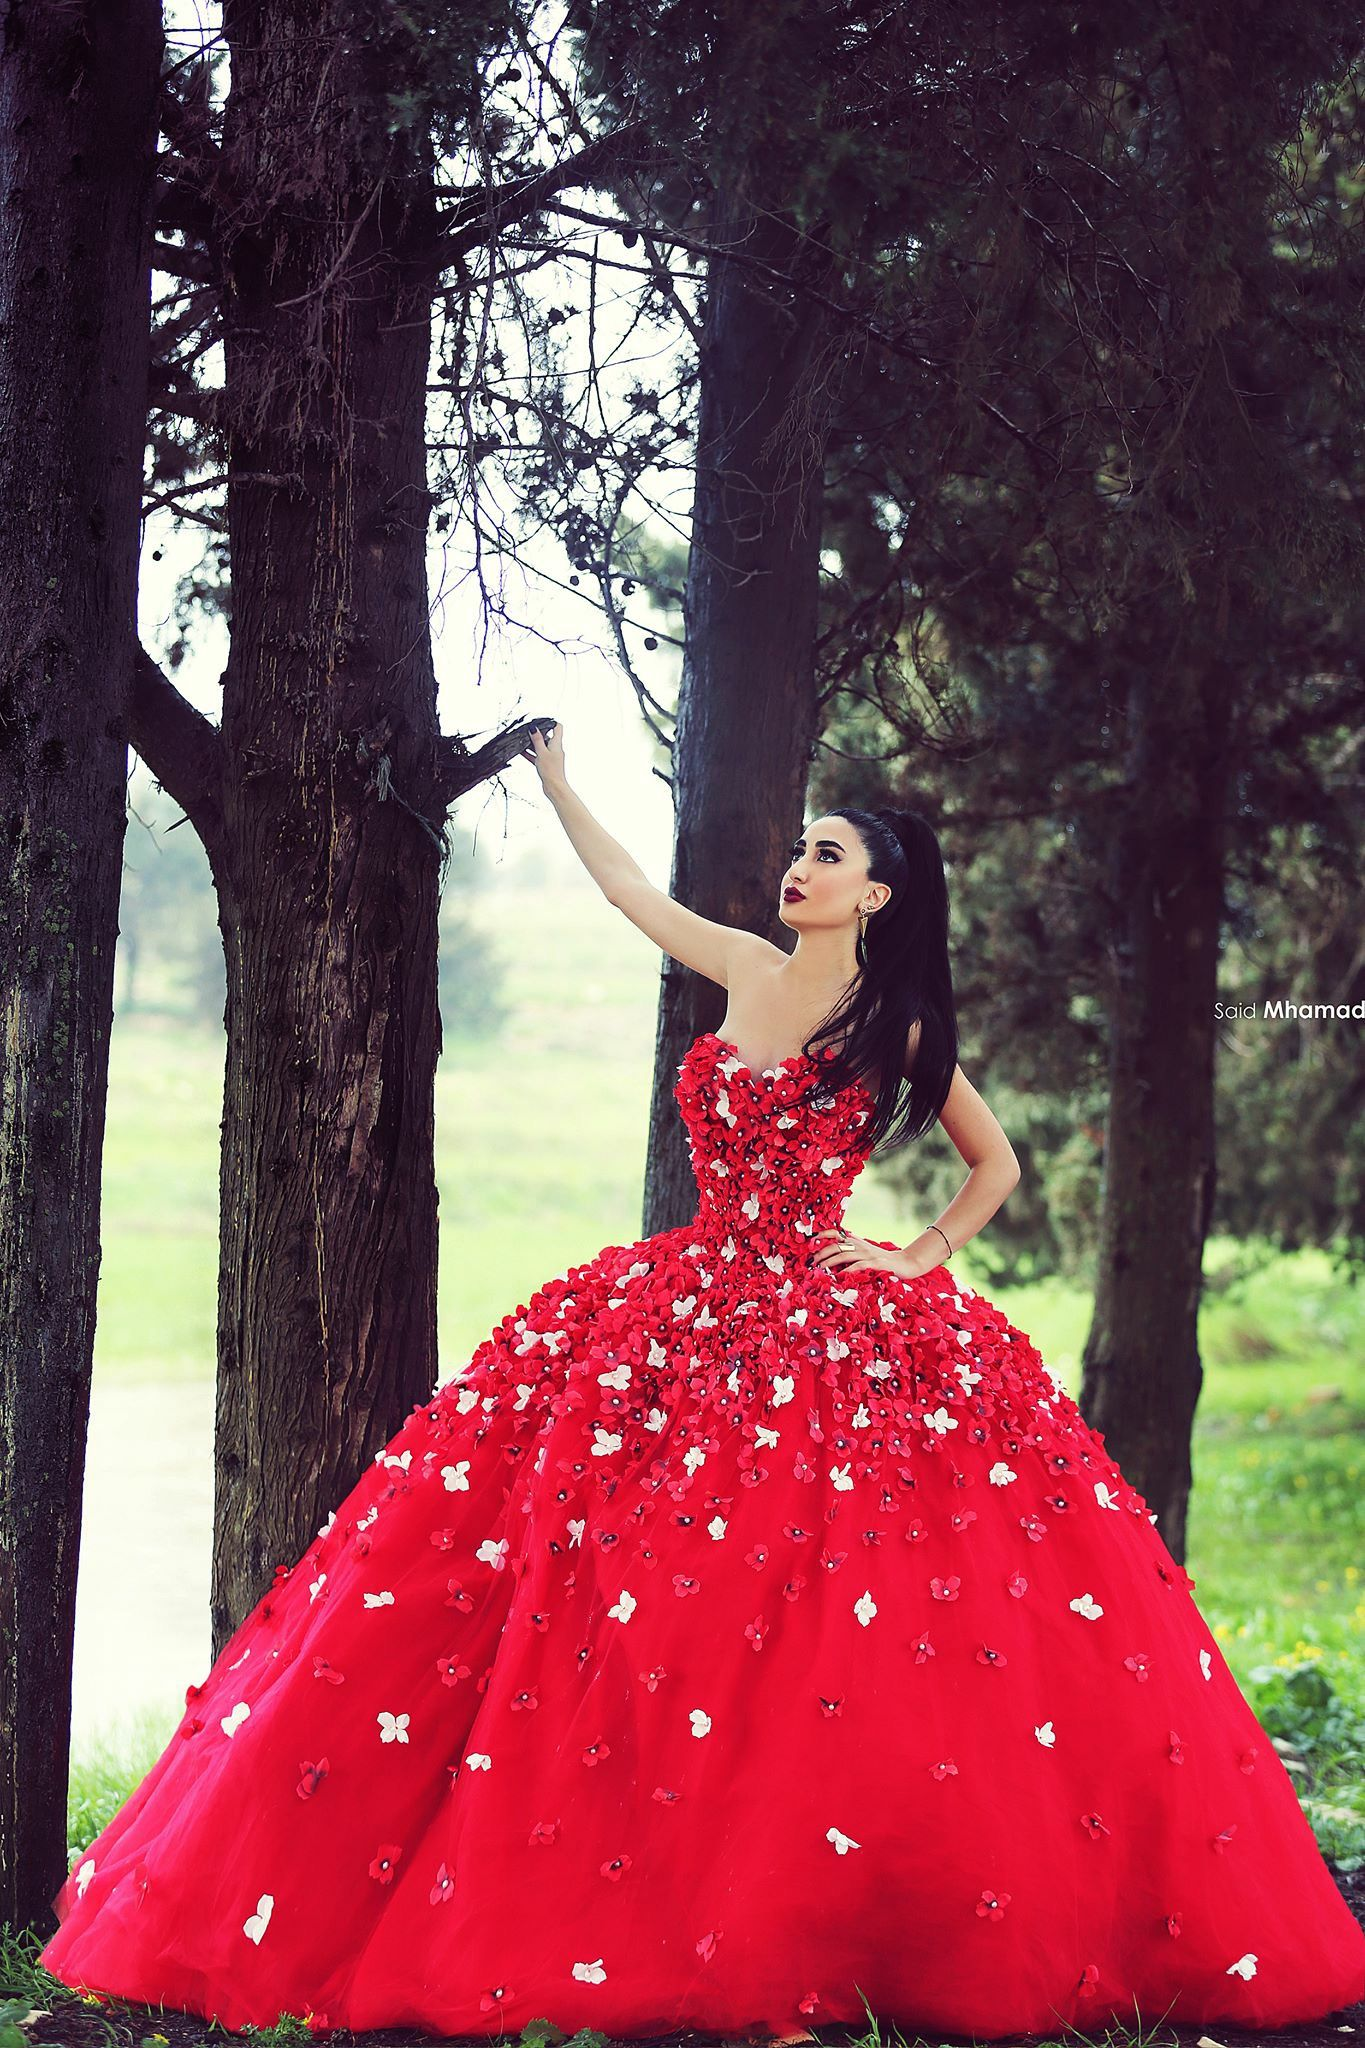 Pin by ecstasy mashallah on photography with mirror u pose ideas